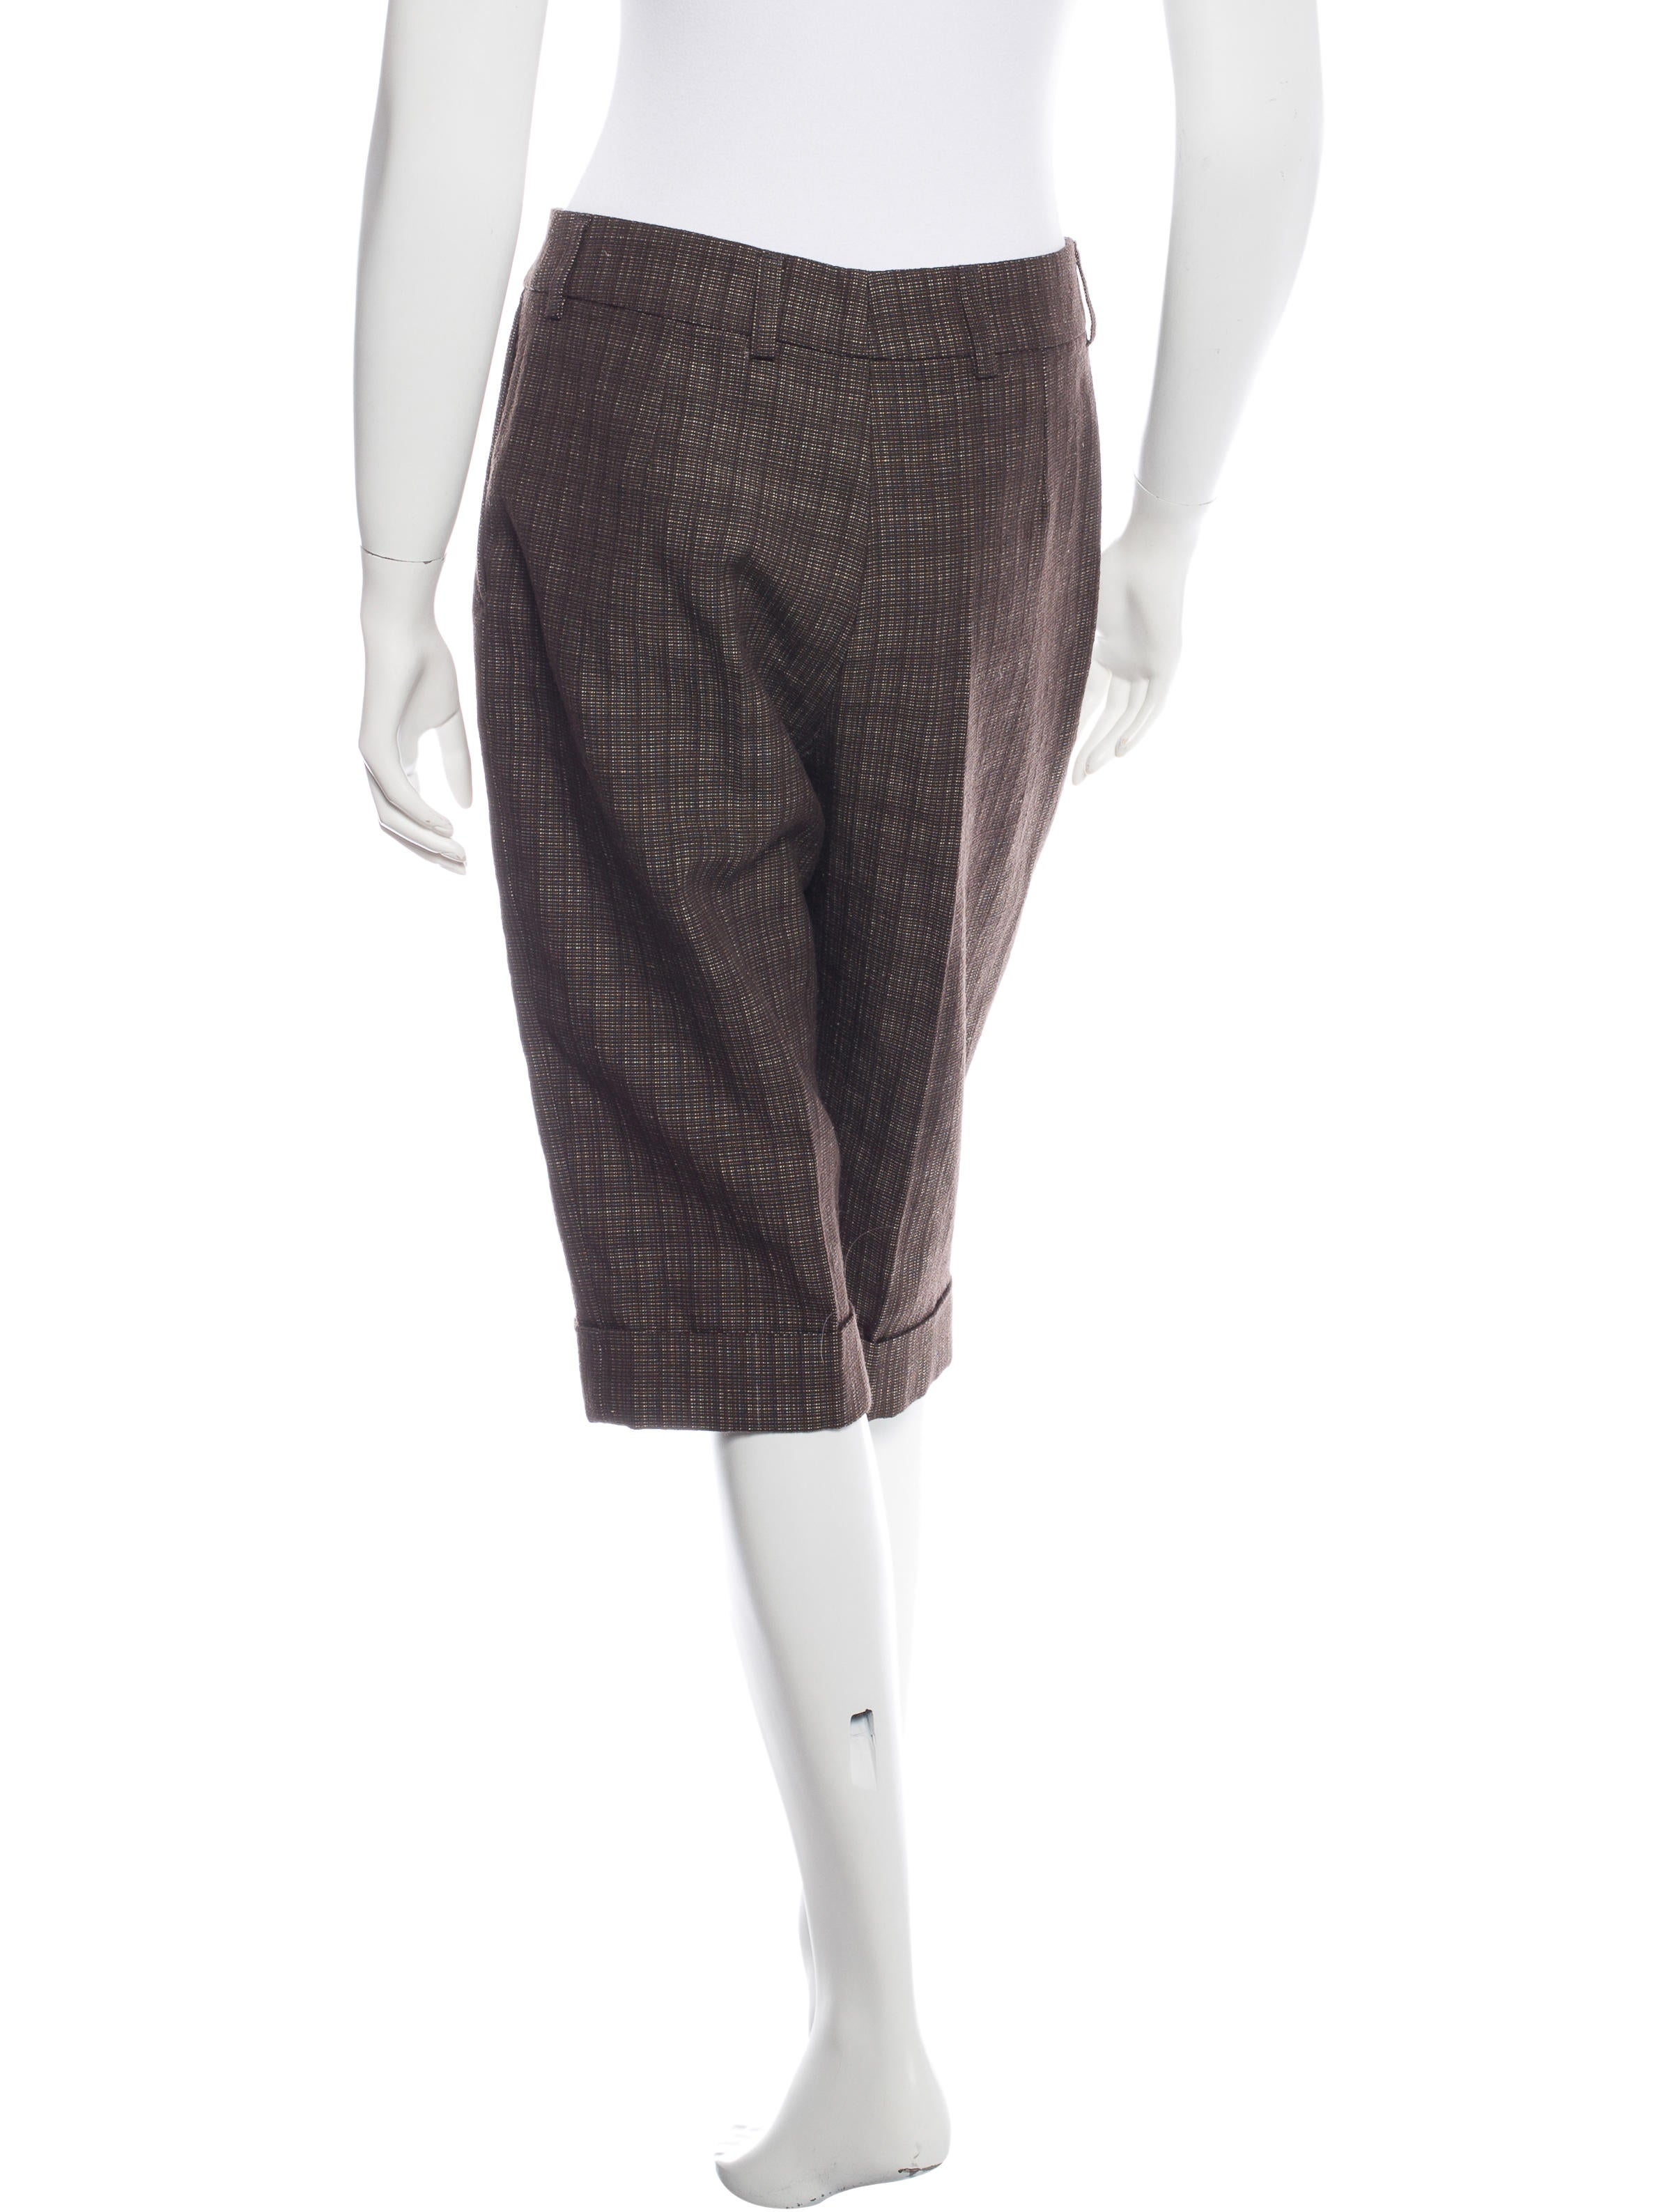 linen dries with Dries Van Noten Wool Knee Length Shorts 1 on Make Home Eco Friendly together with Lightweight Navy Blazers Spring 2016 likewise Flax Linum Usitatissimum besides Microfiber Underwear For Men in addition Marchanson blogspot.